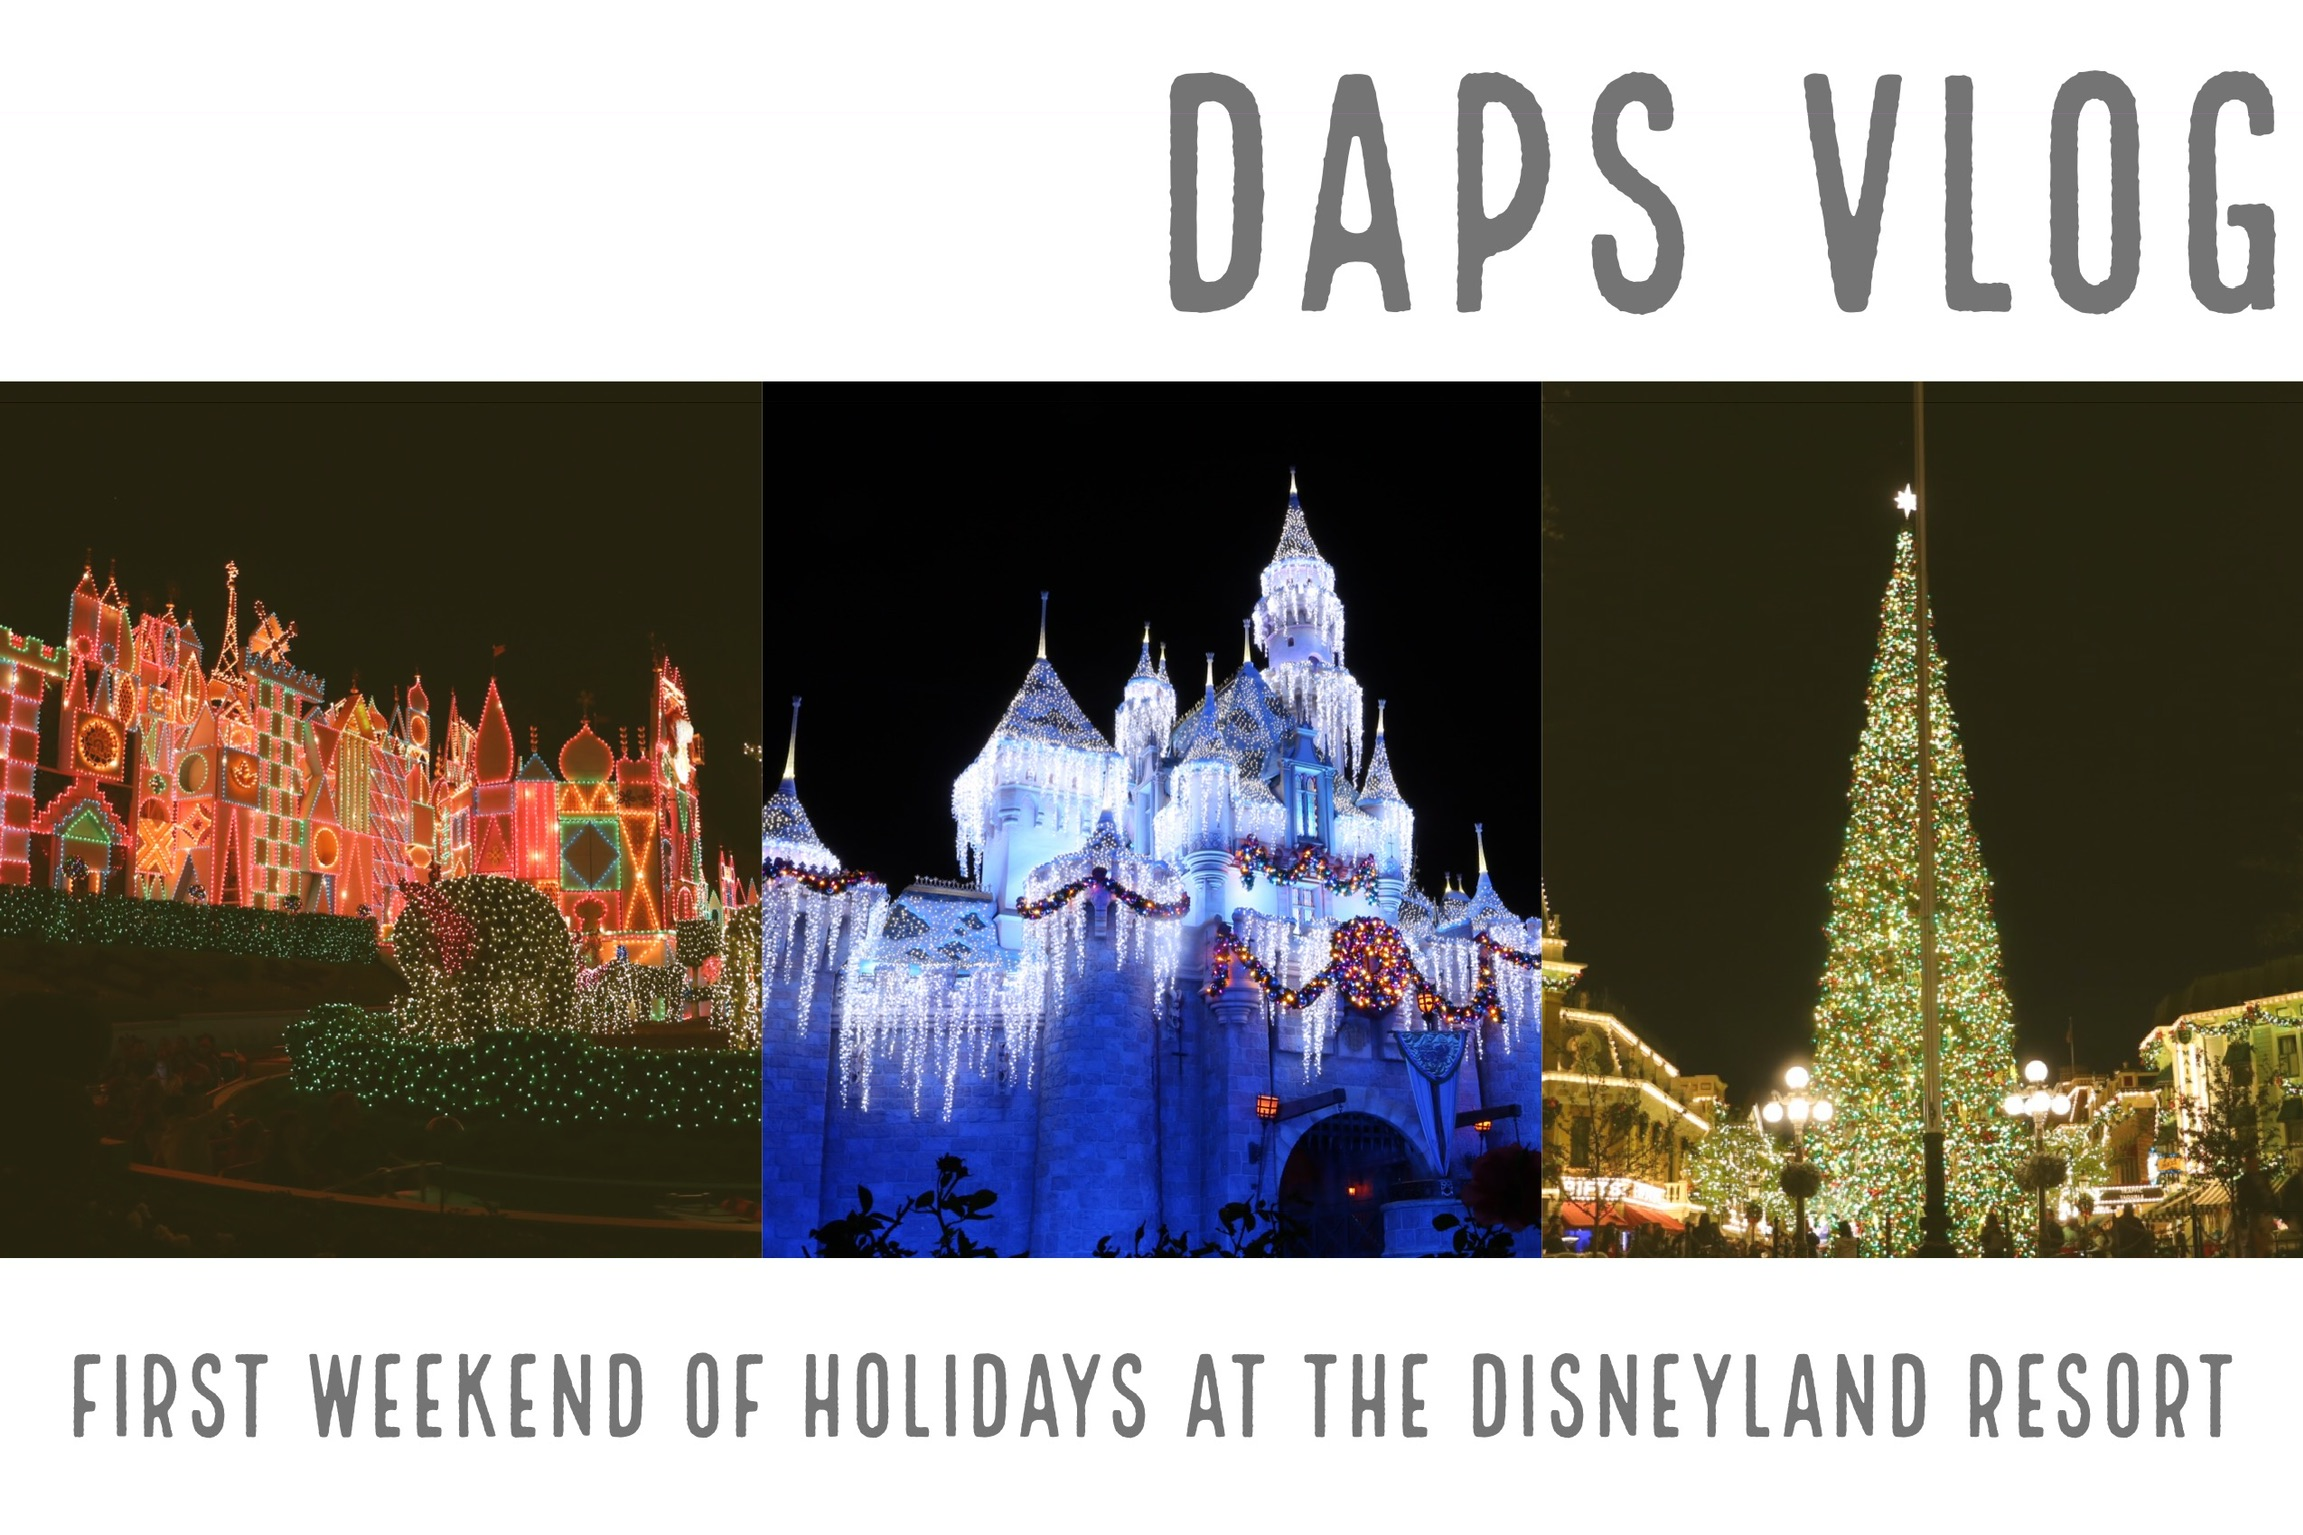 See the First Weekend of the Holidays at Disneyland Resort Through Our Eyes – DAPs VLOG